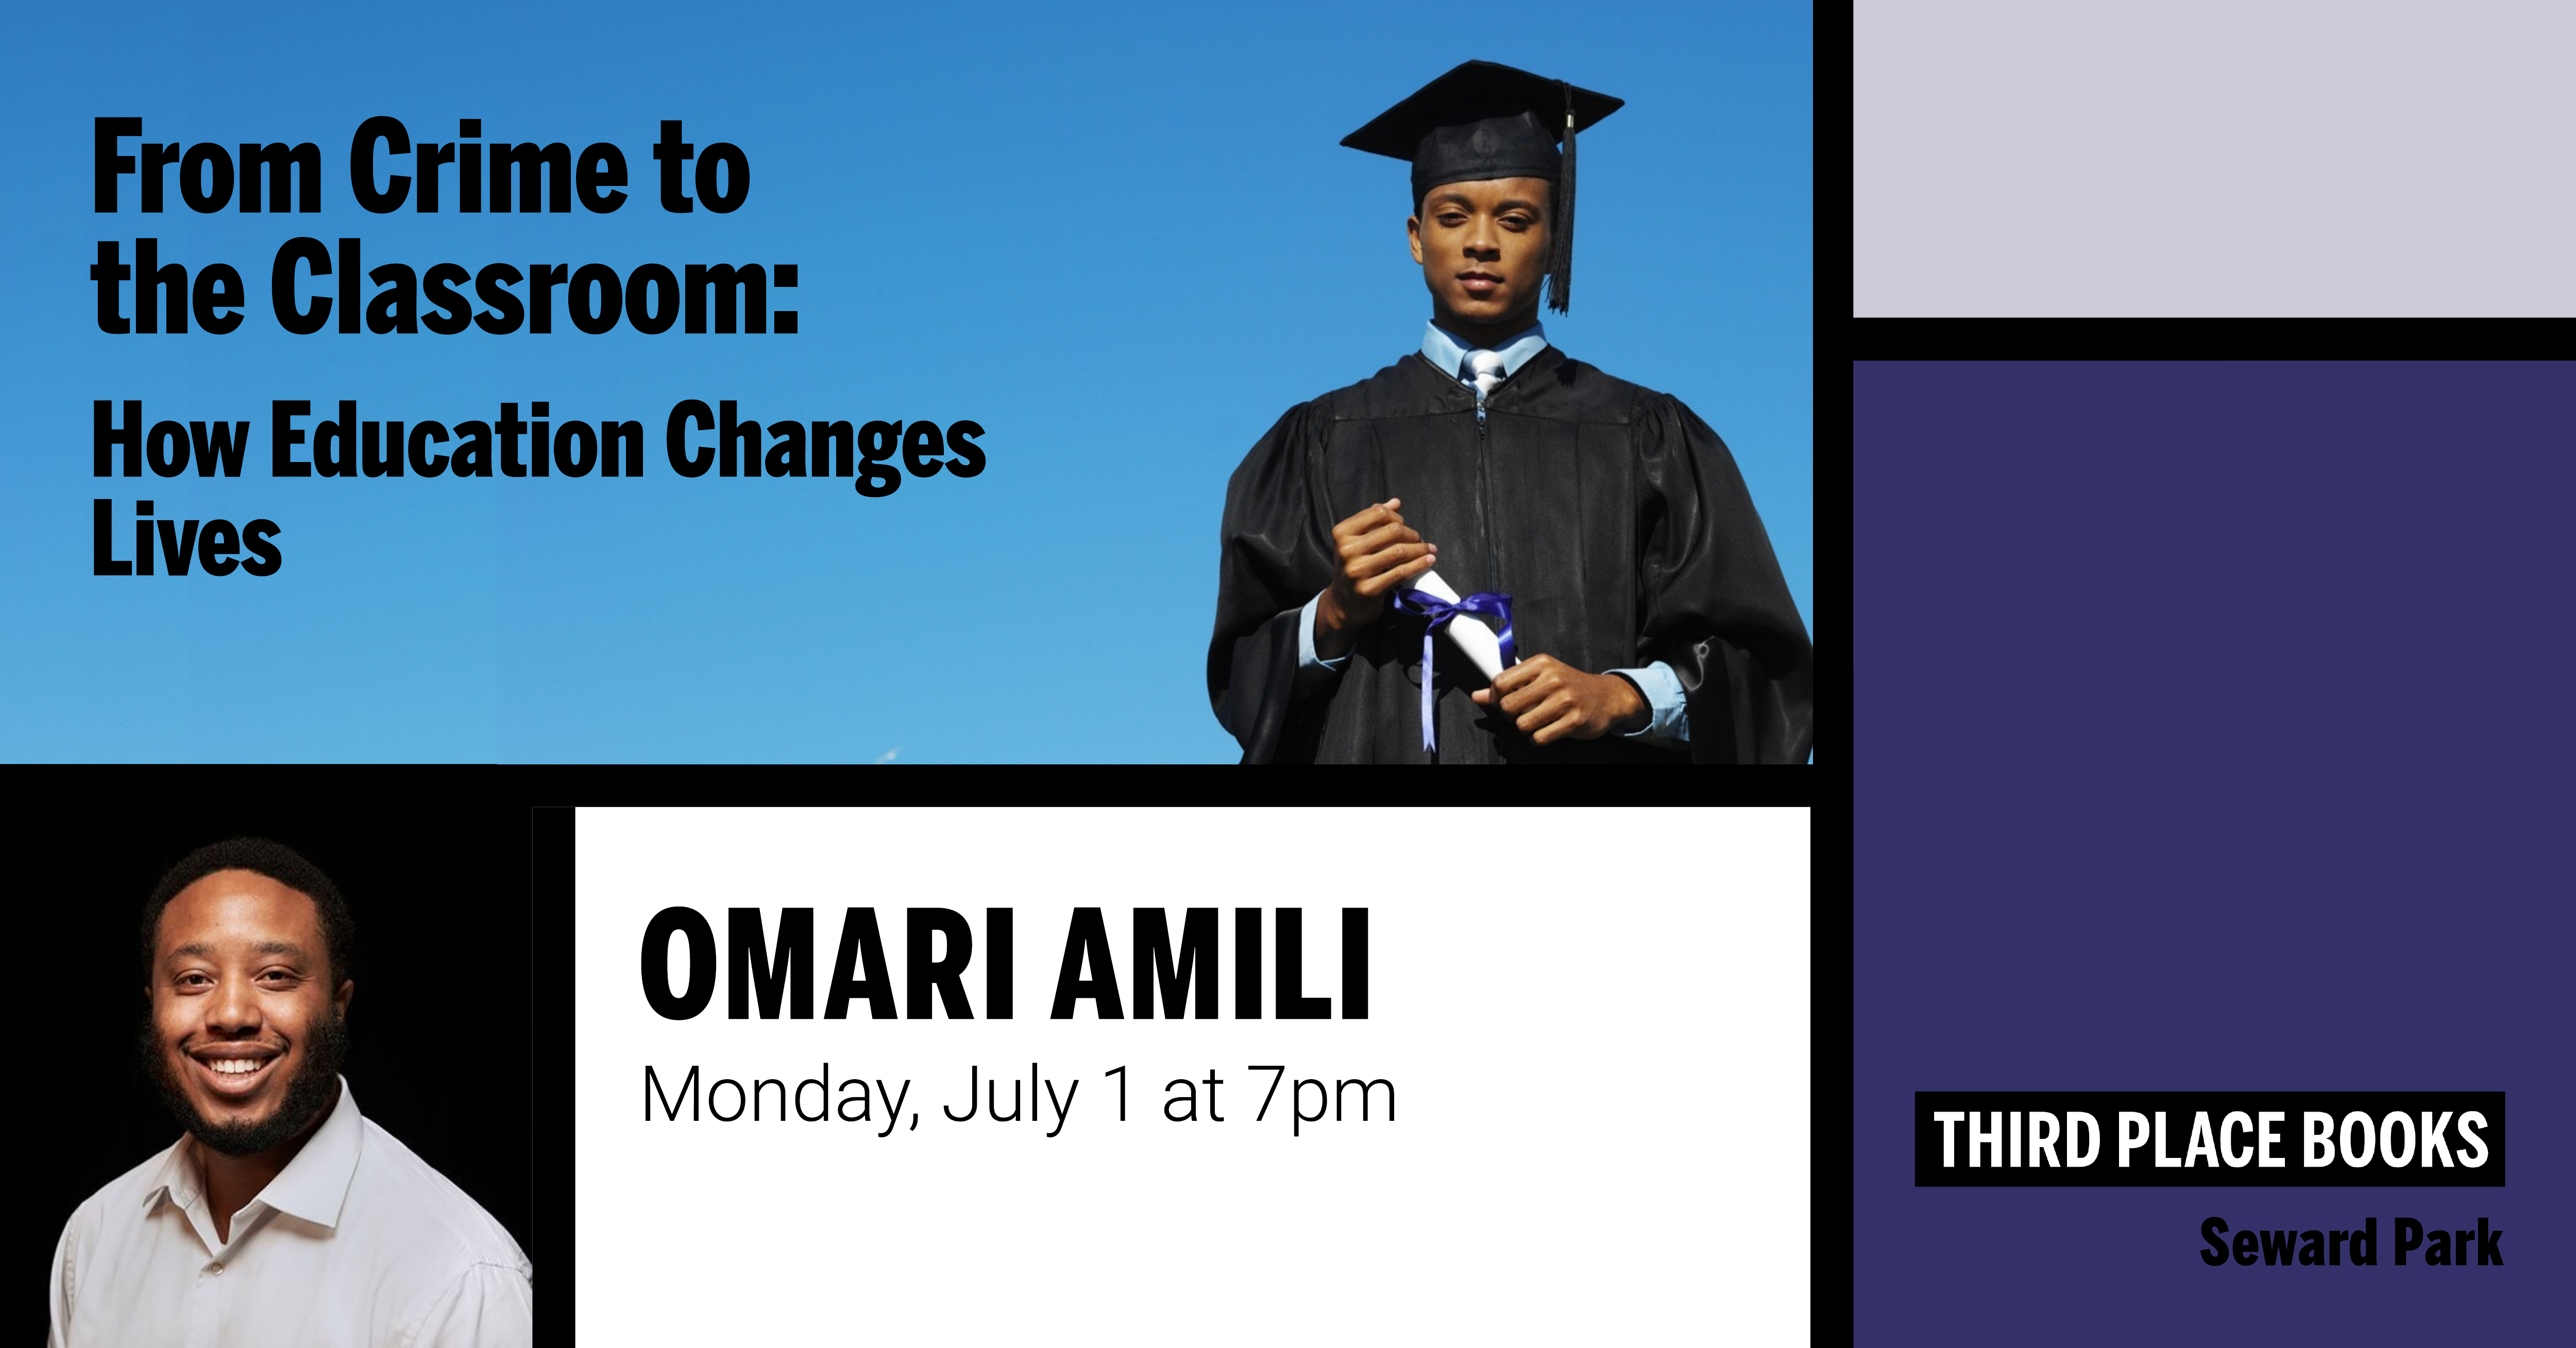 From Crime to Classroom: How Education Changes Lives with Omari Amili